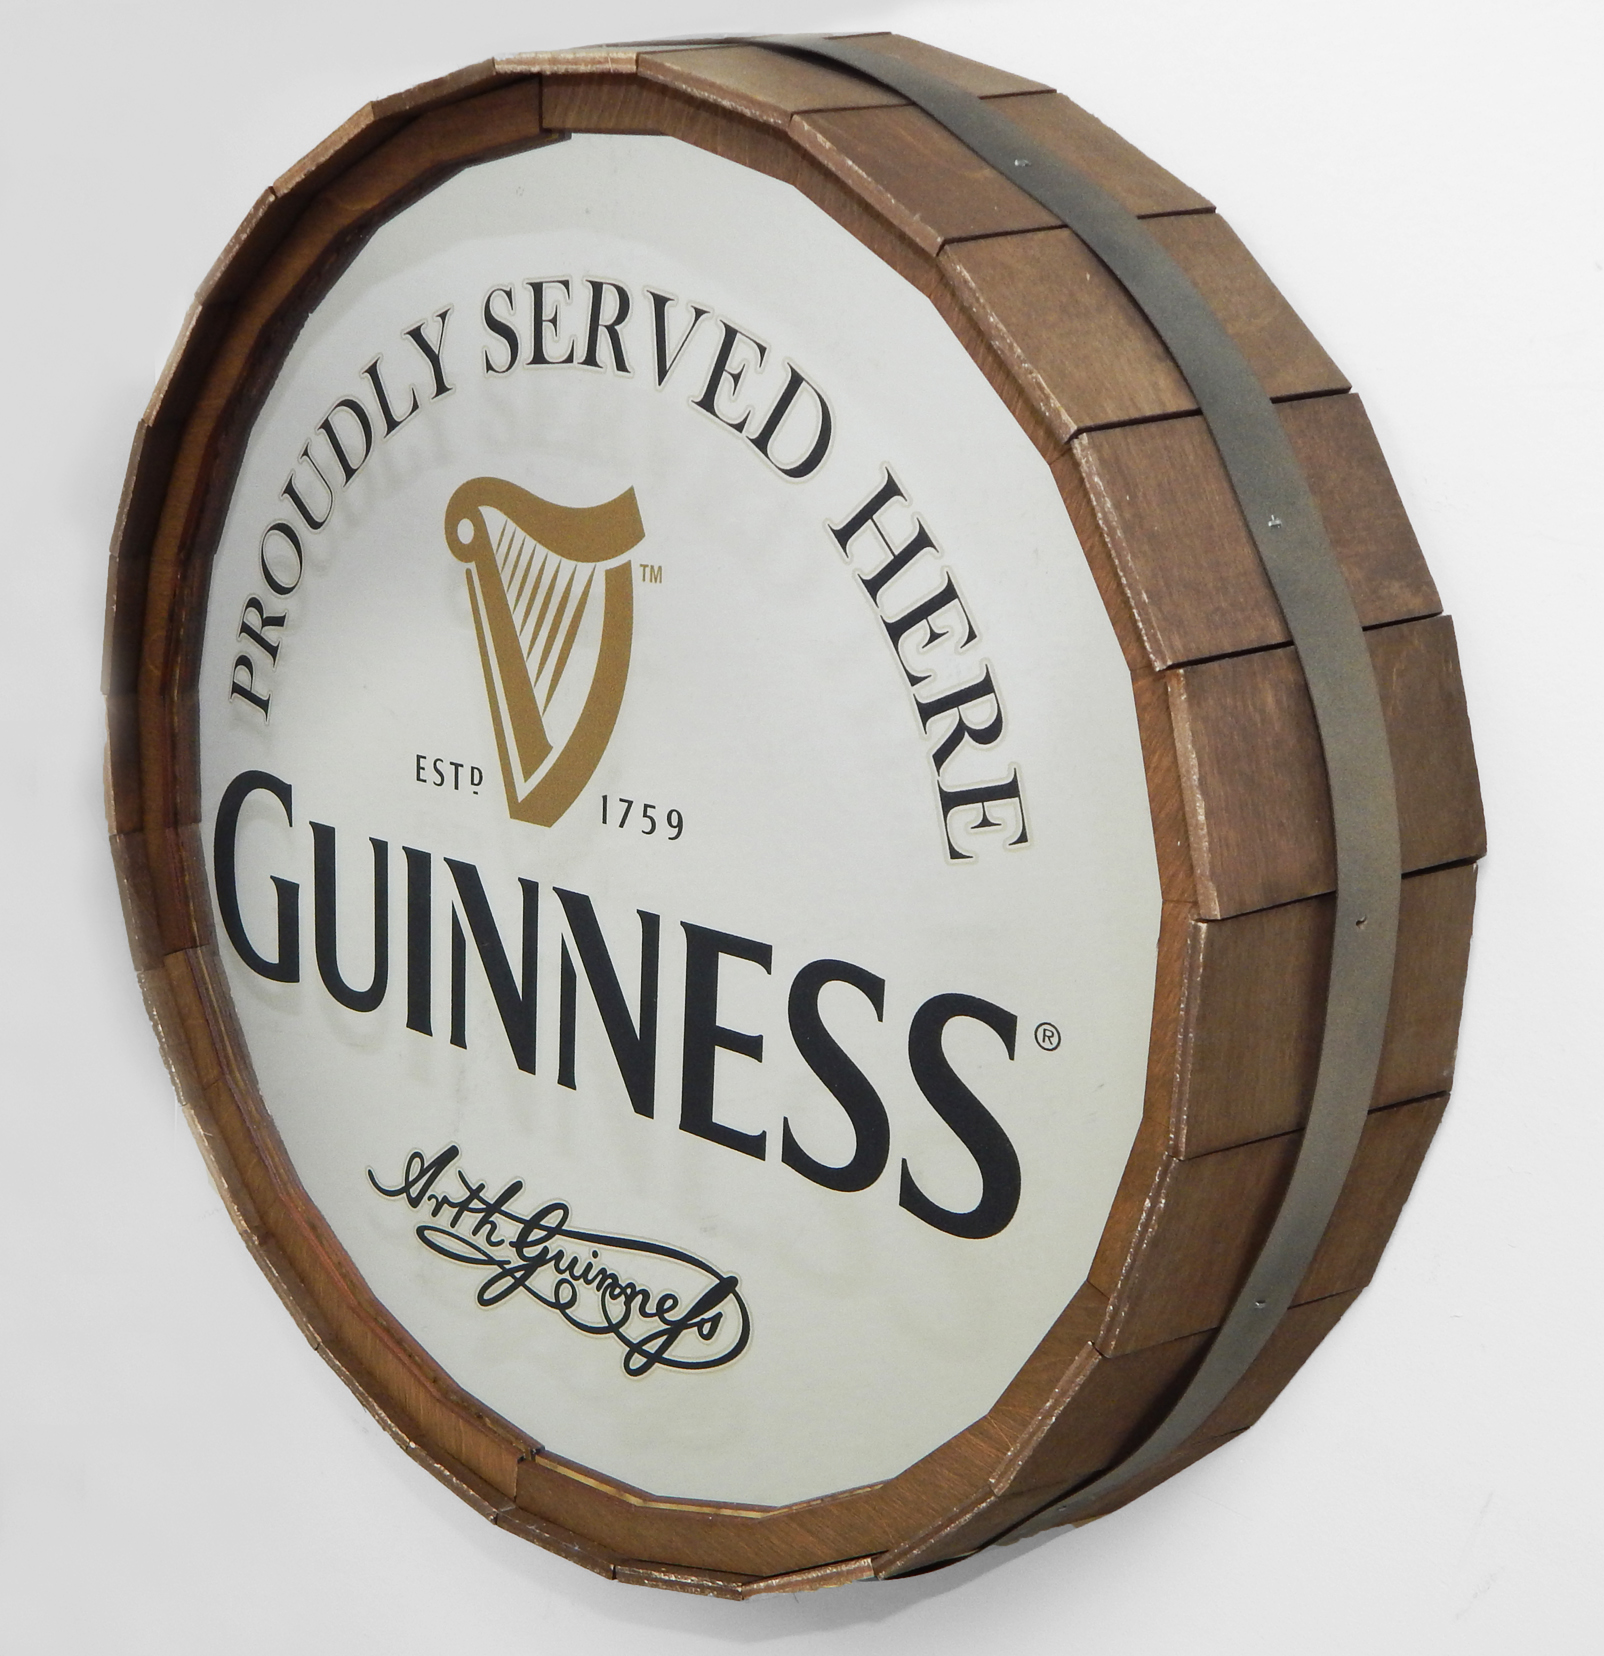 Guinness Barrel Head Mirror copy1